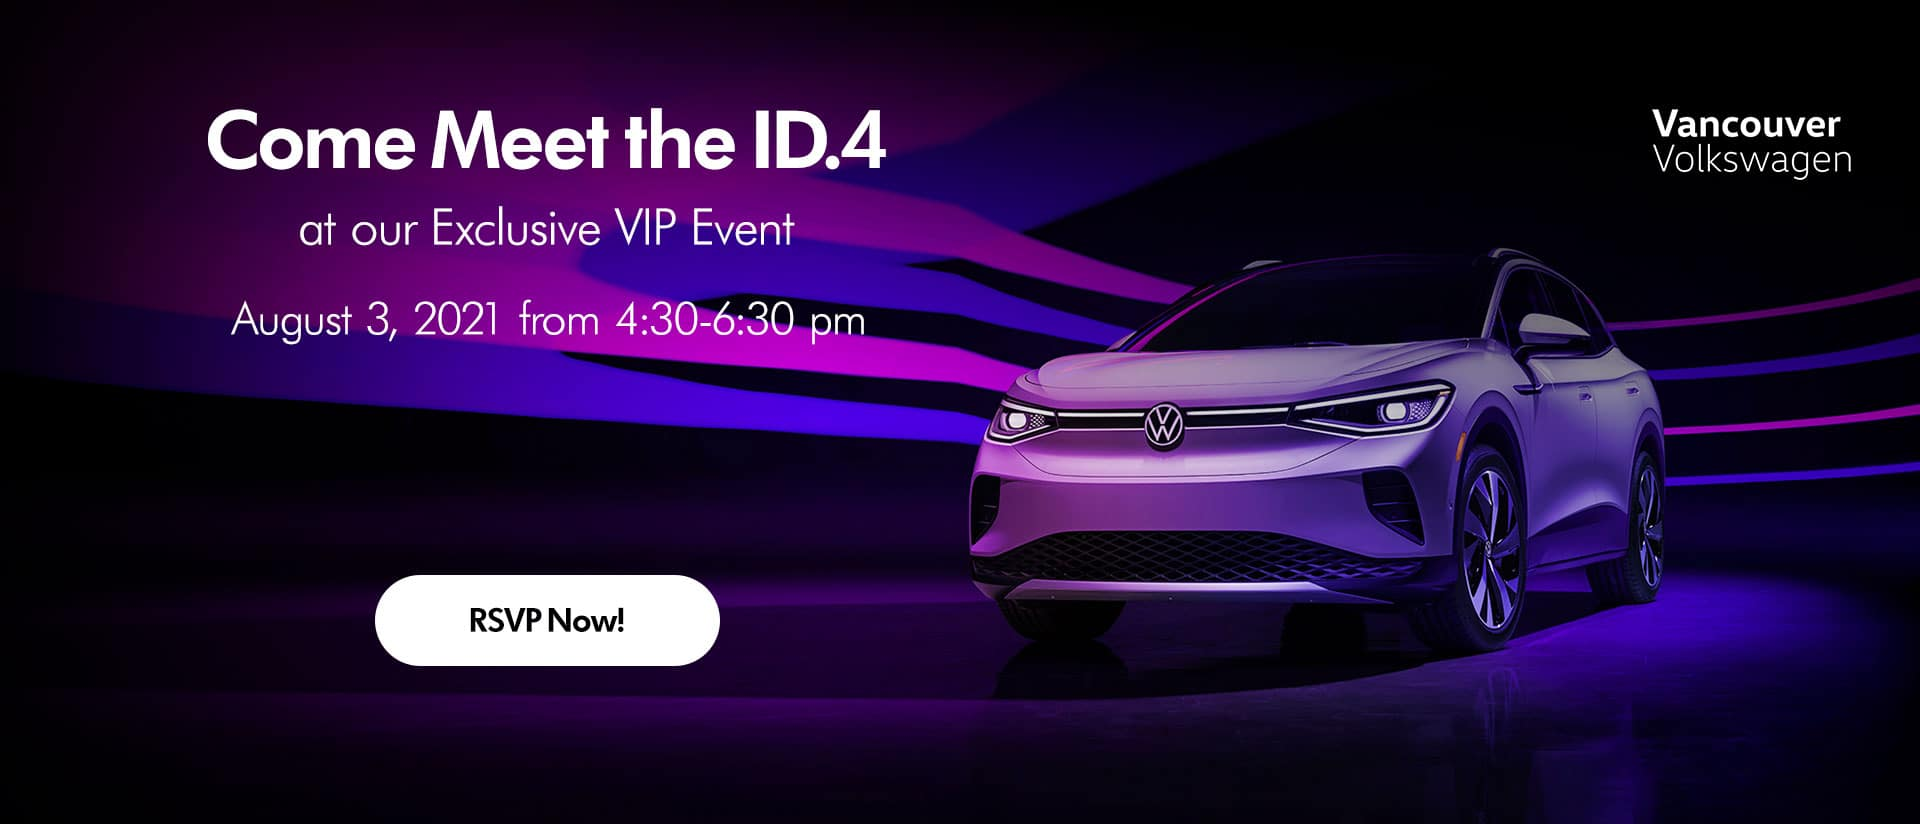 Come Meet the ID.4 at our Exclusive VIP Event, August 3, 2021 from 4:30-6:30pm